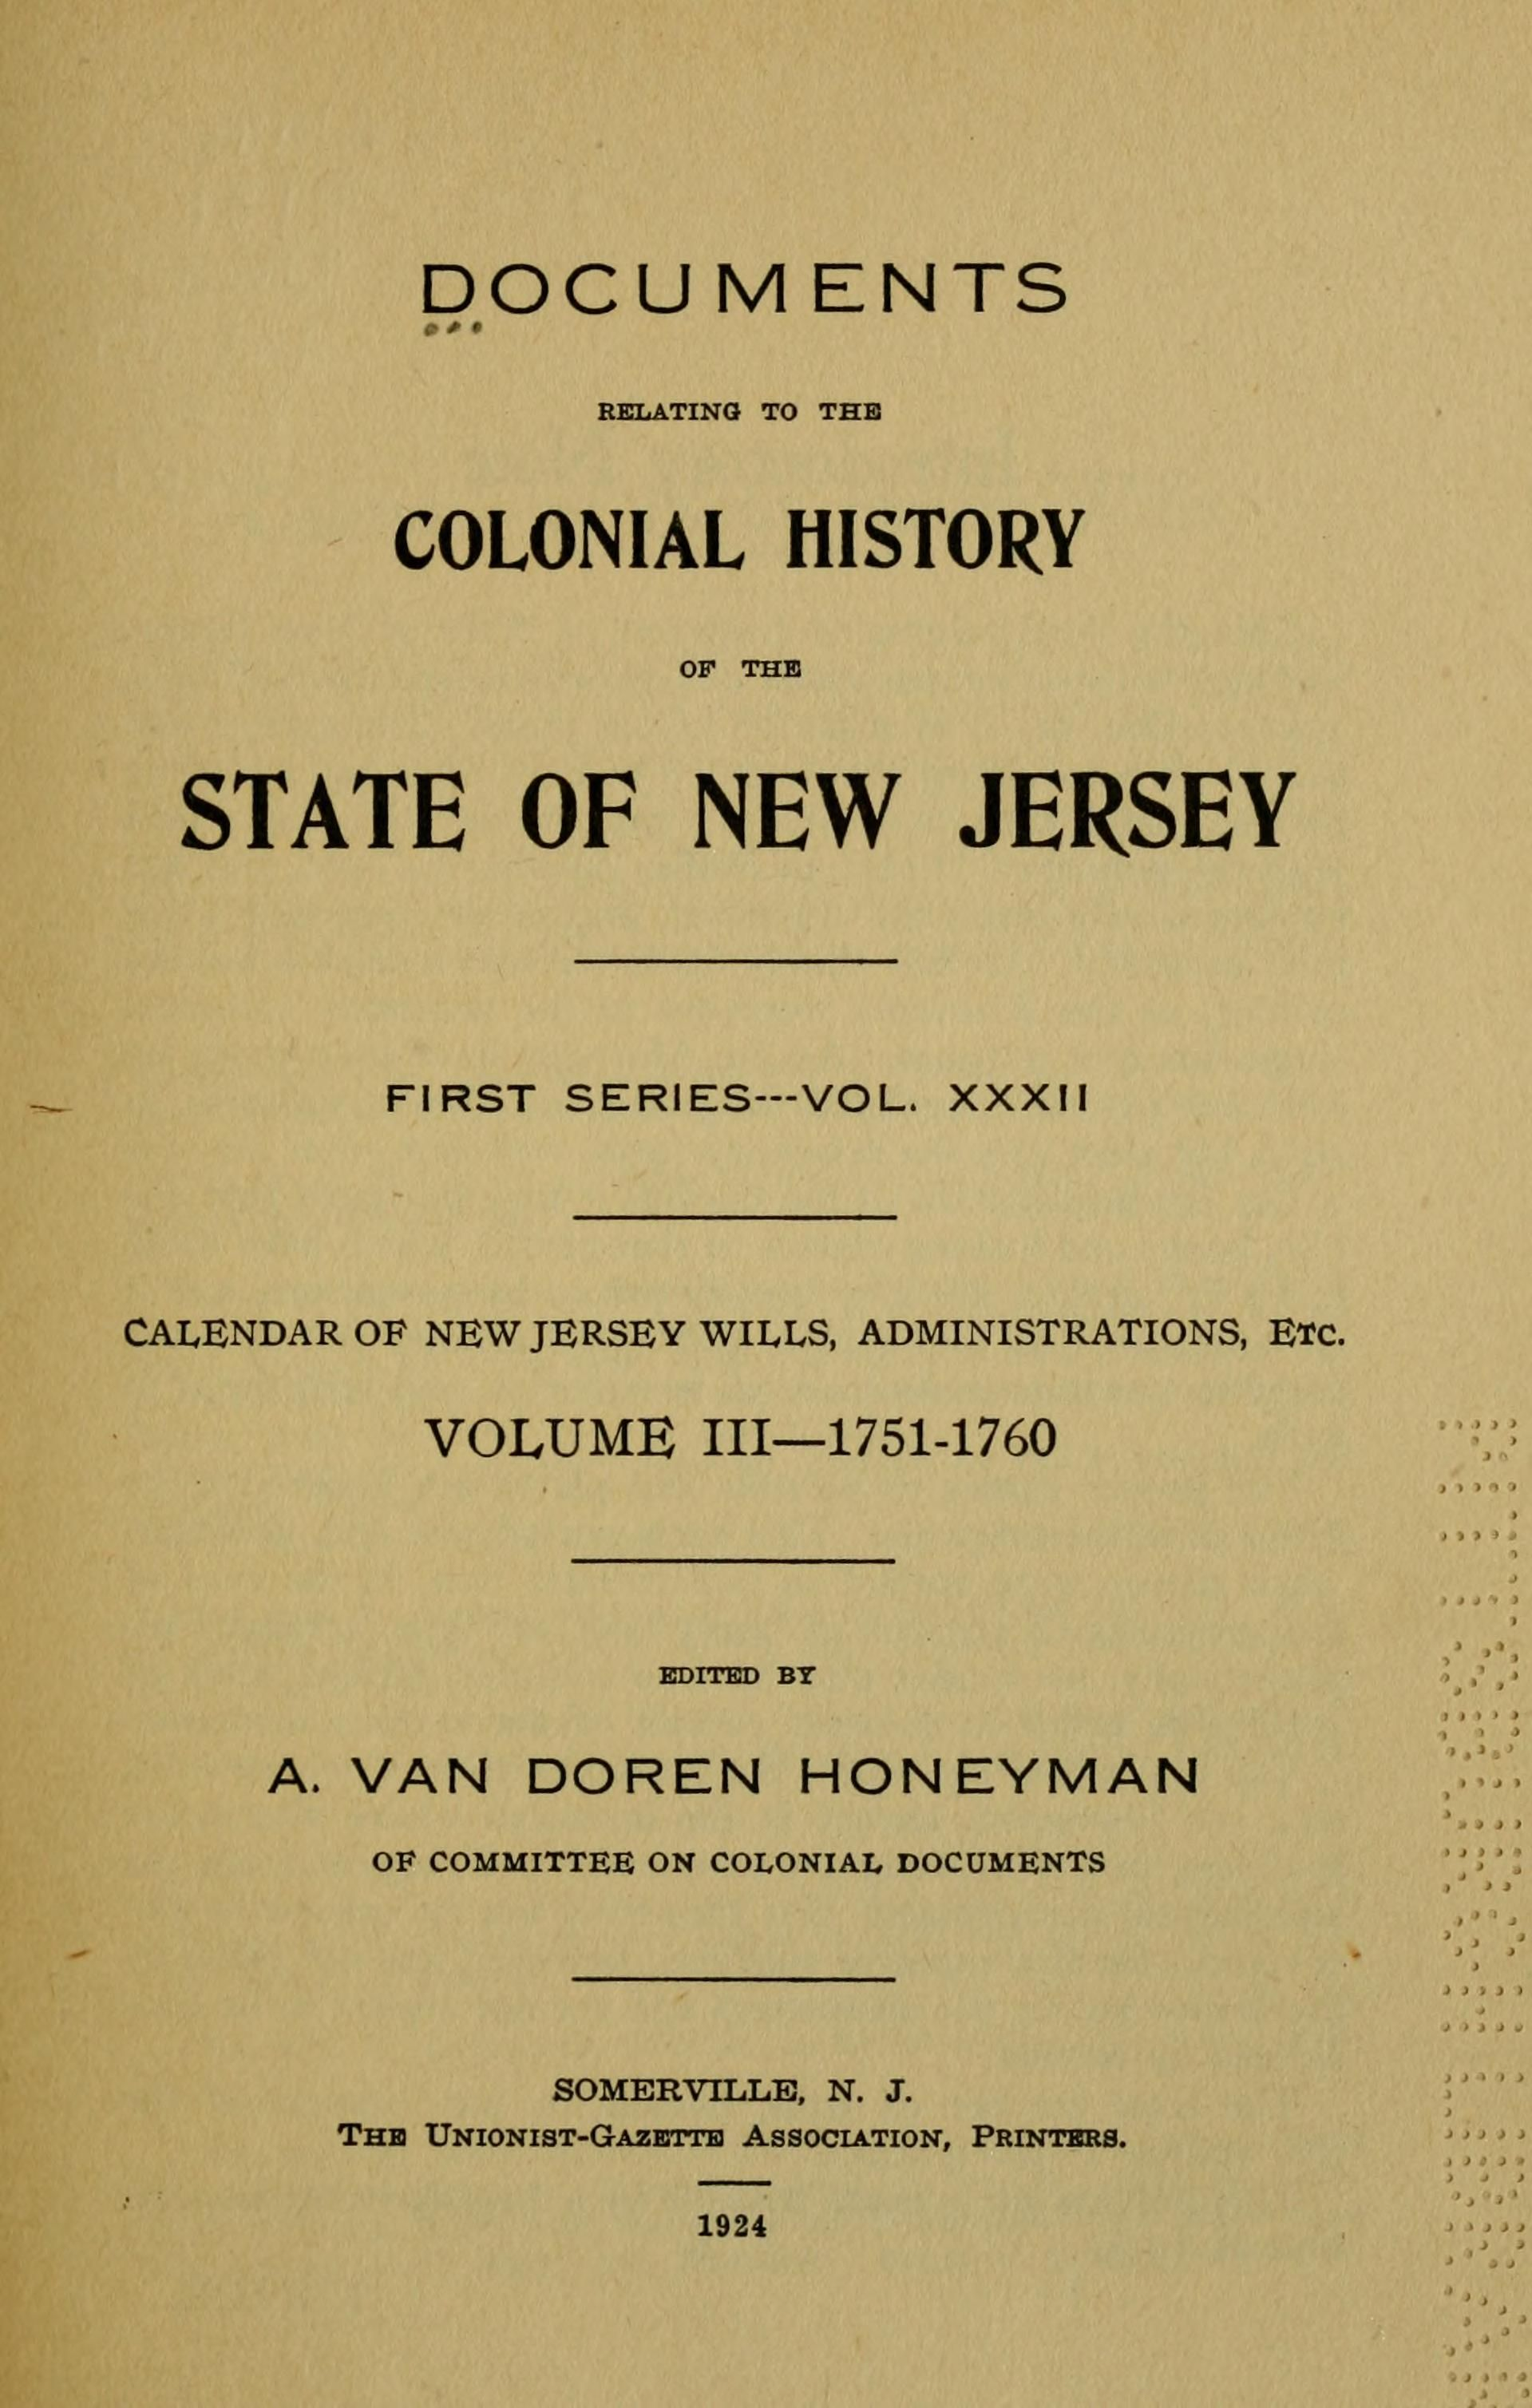 Documents Relating To The Colonial Revolutionary And Post